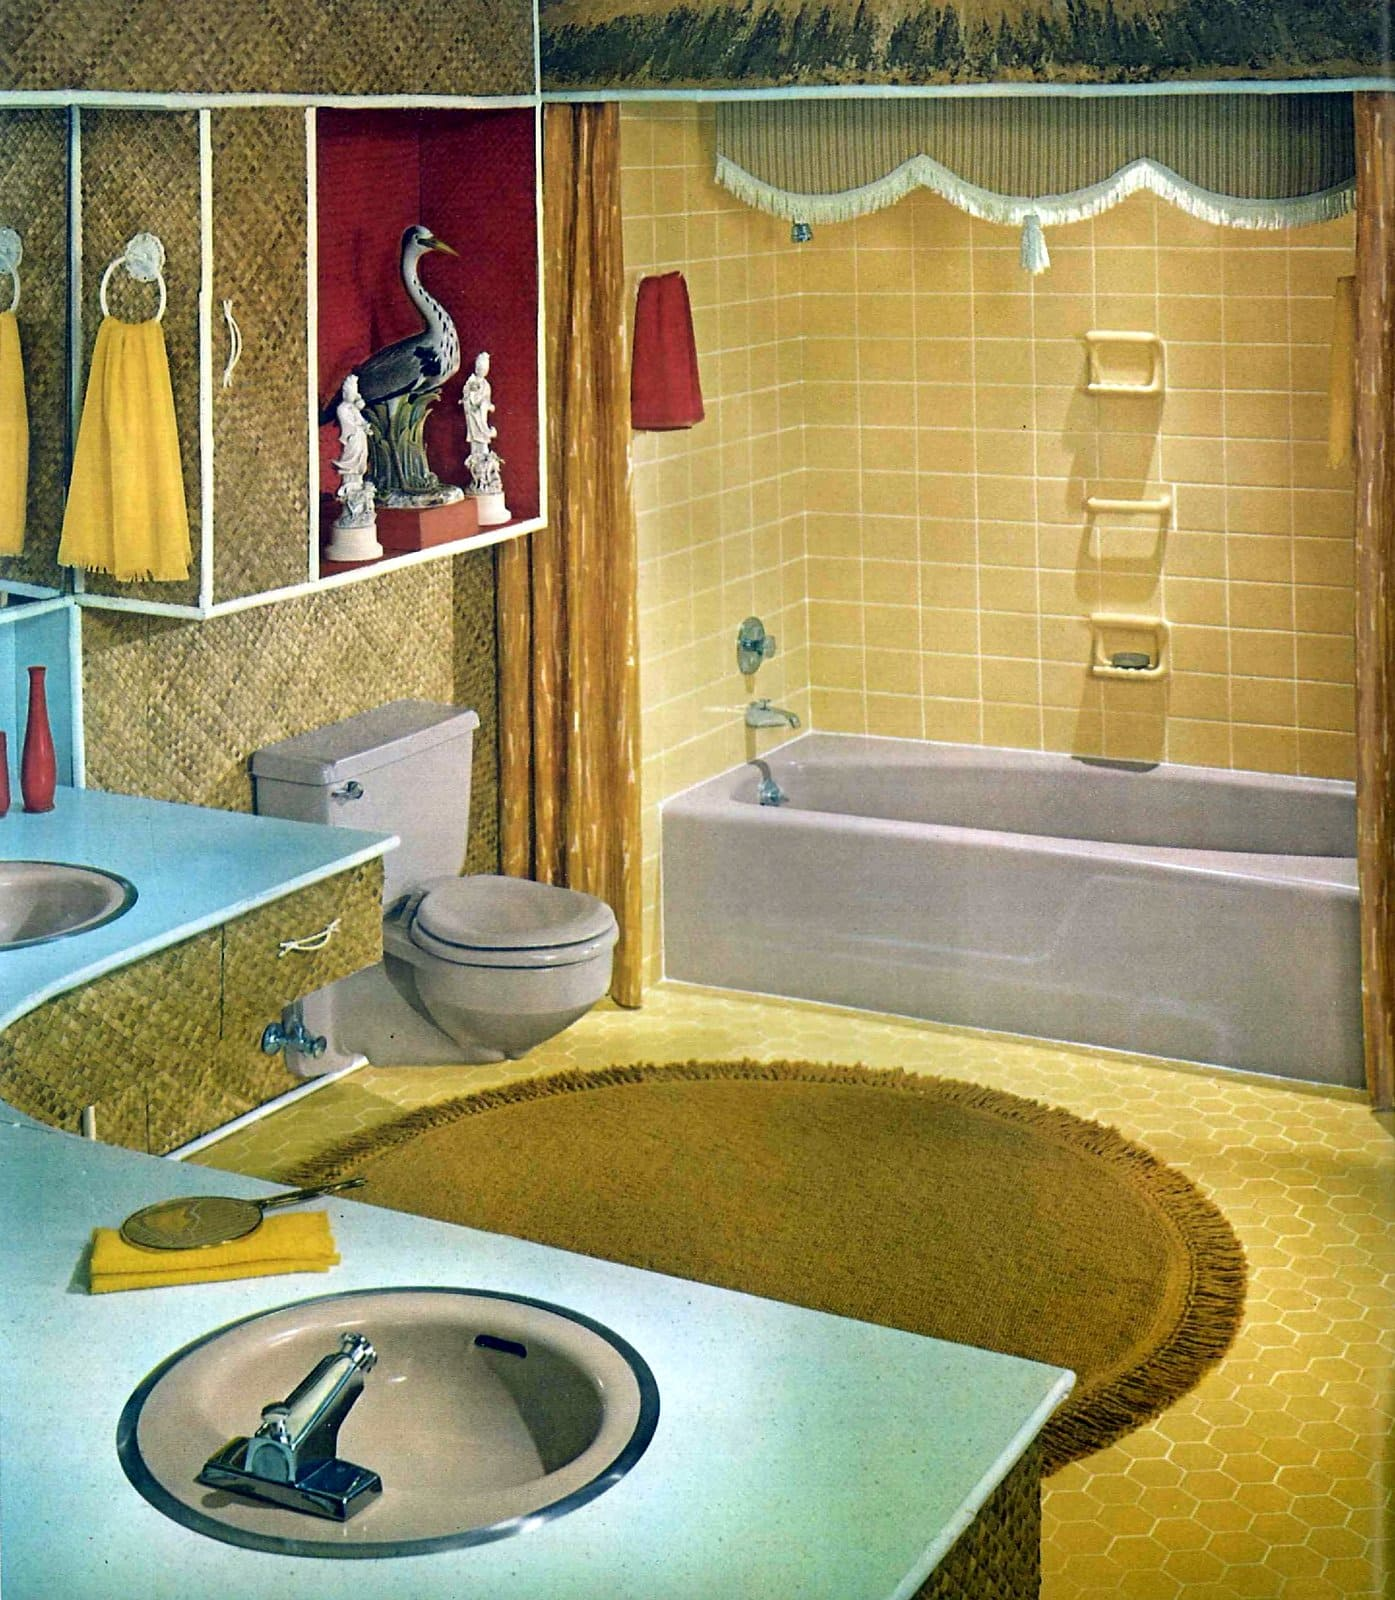 Vintage 1950s bathroom in yellow and aqua with gray fixtures